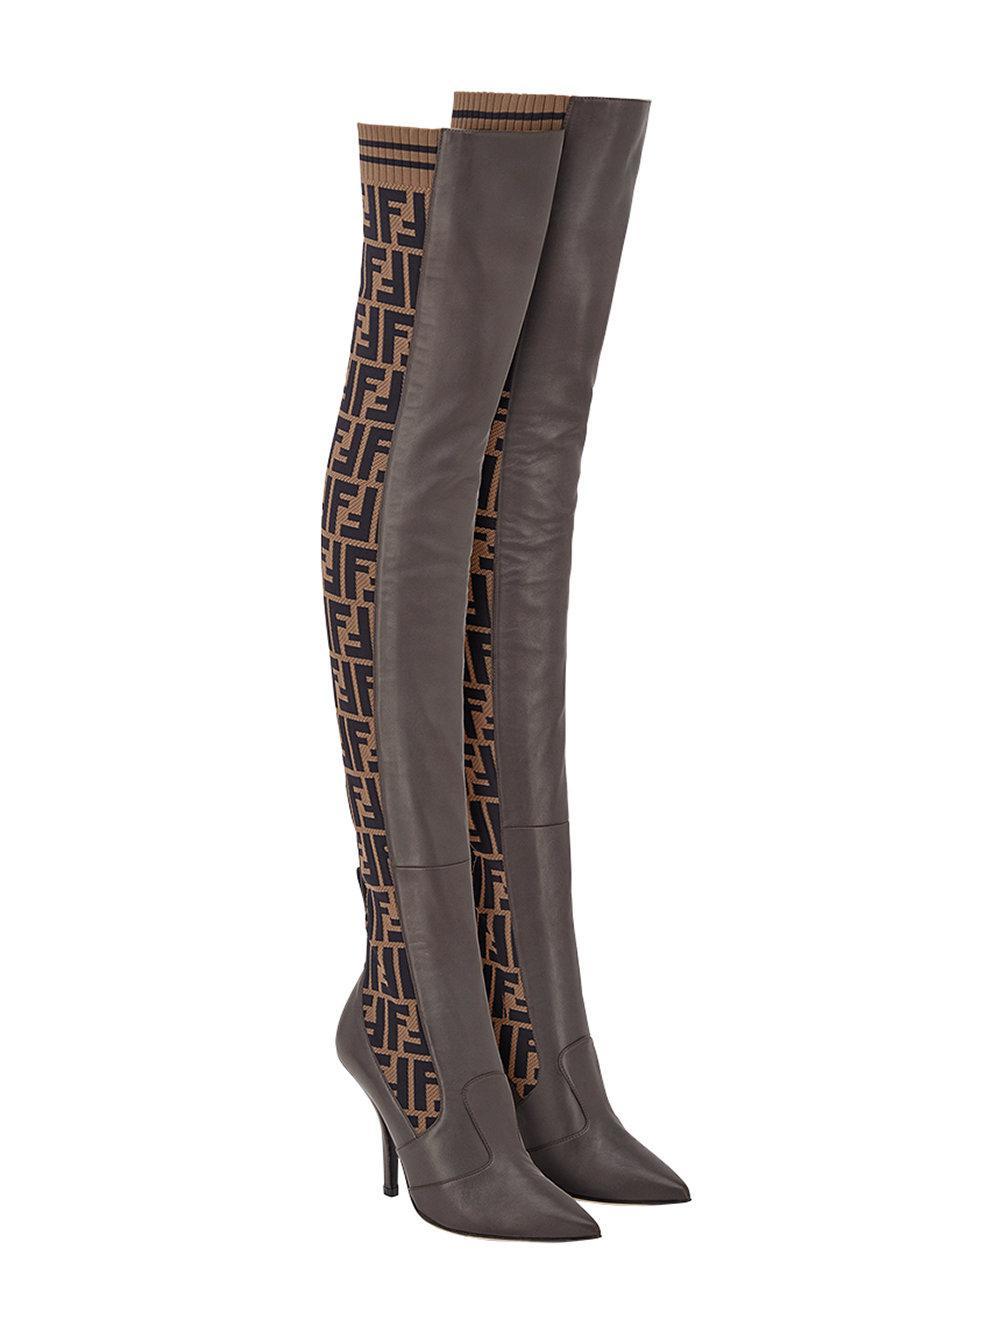 db55fe4a042 Fendi - Brown Ff Motif Thigh-high Boots - Lyst. View fullscreen